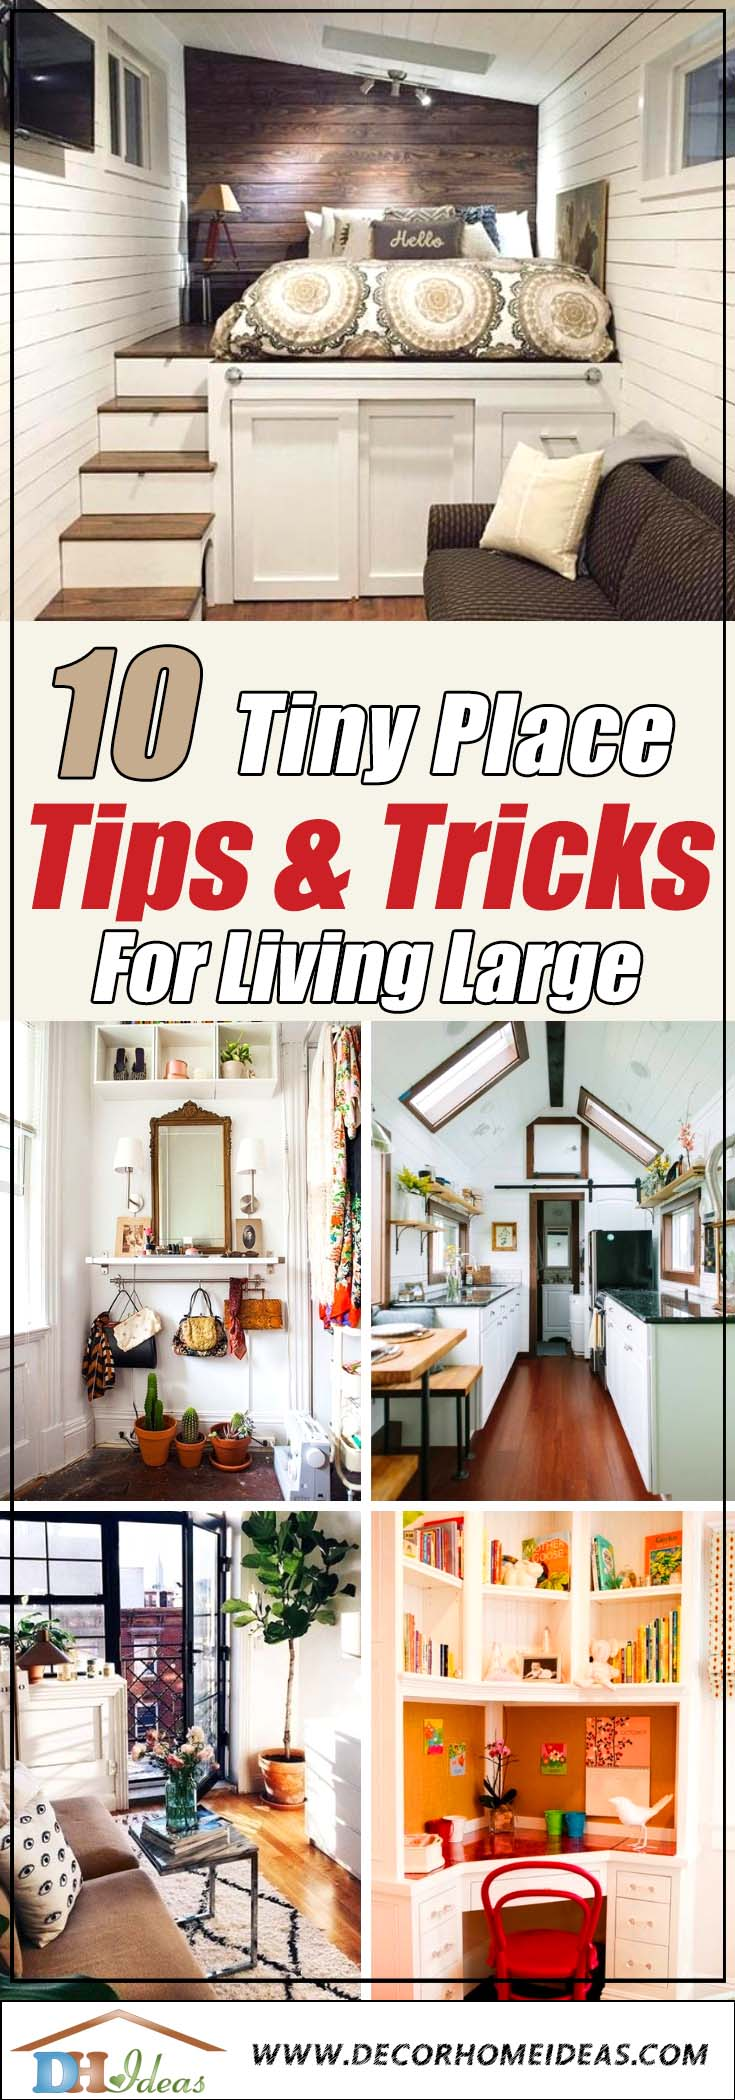 10 Tiny Place Tips for Living Large | Tips for small apartments and houses and how to save space and make them look bigger. #decoratingideas #homedecor #tinyplace #space #apartments #decorhomeideas